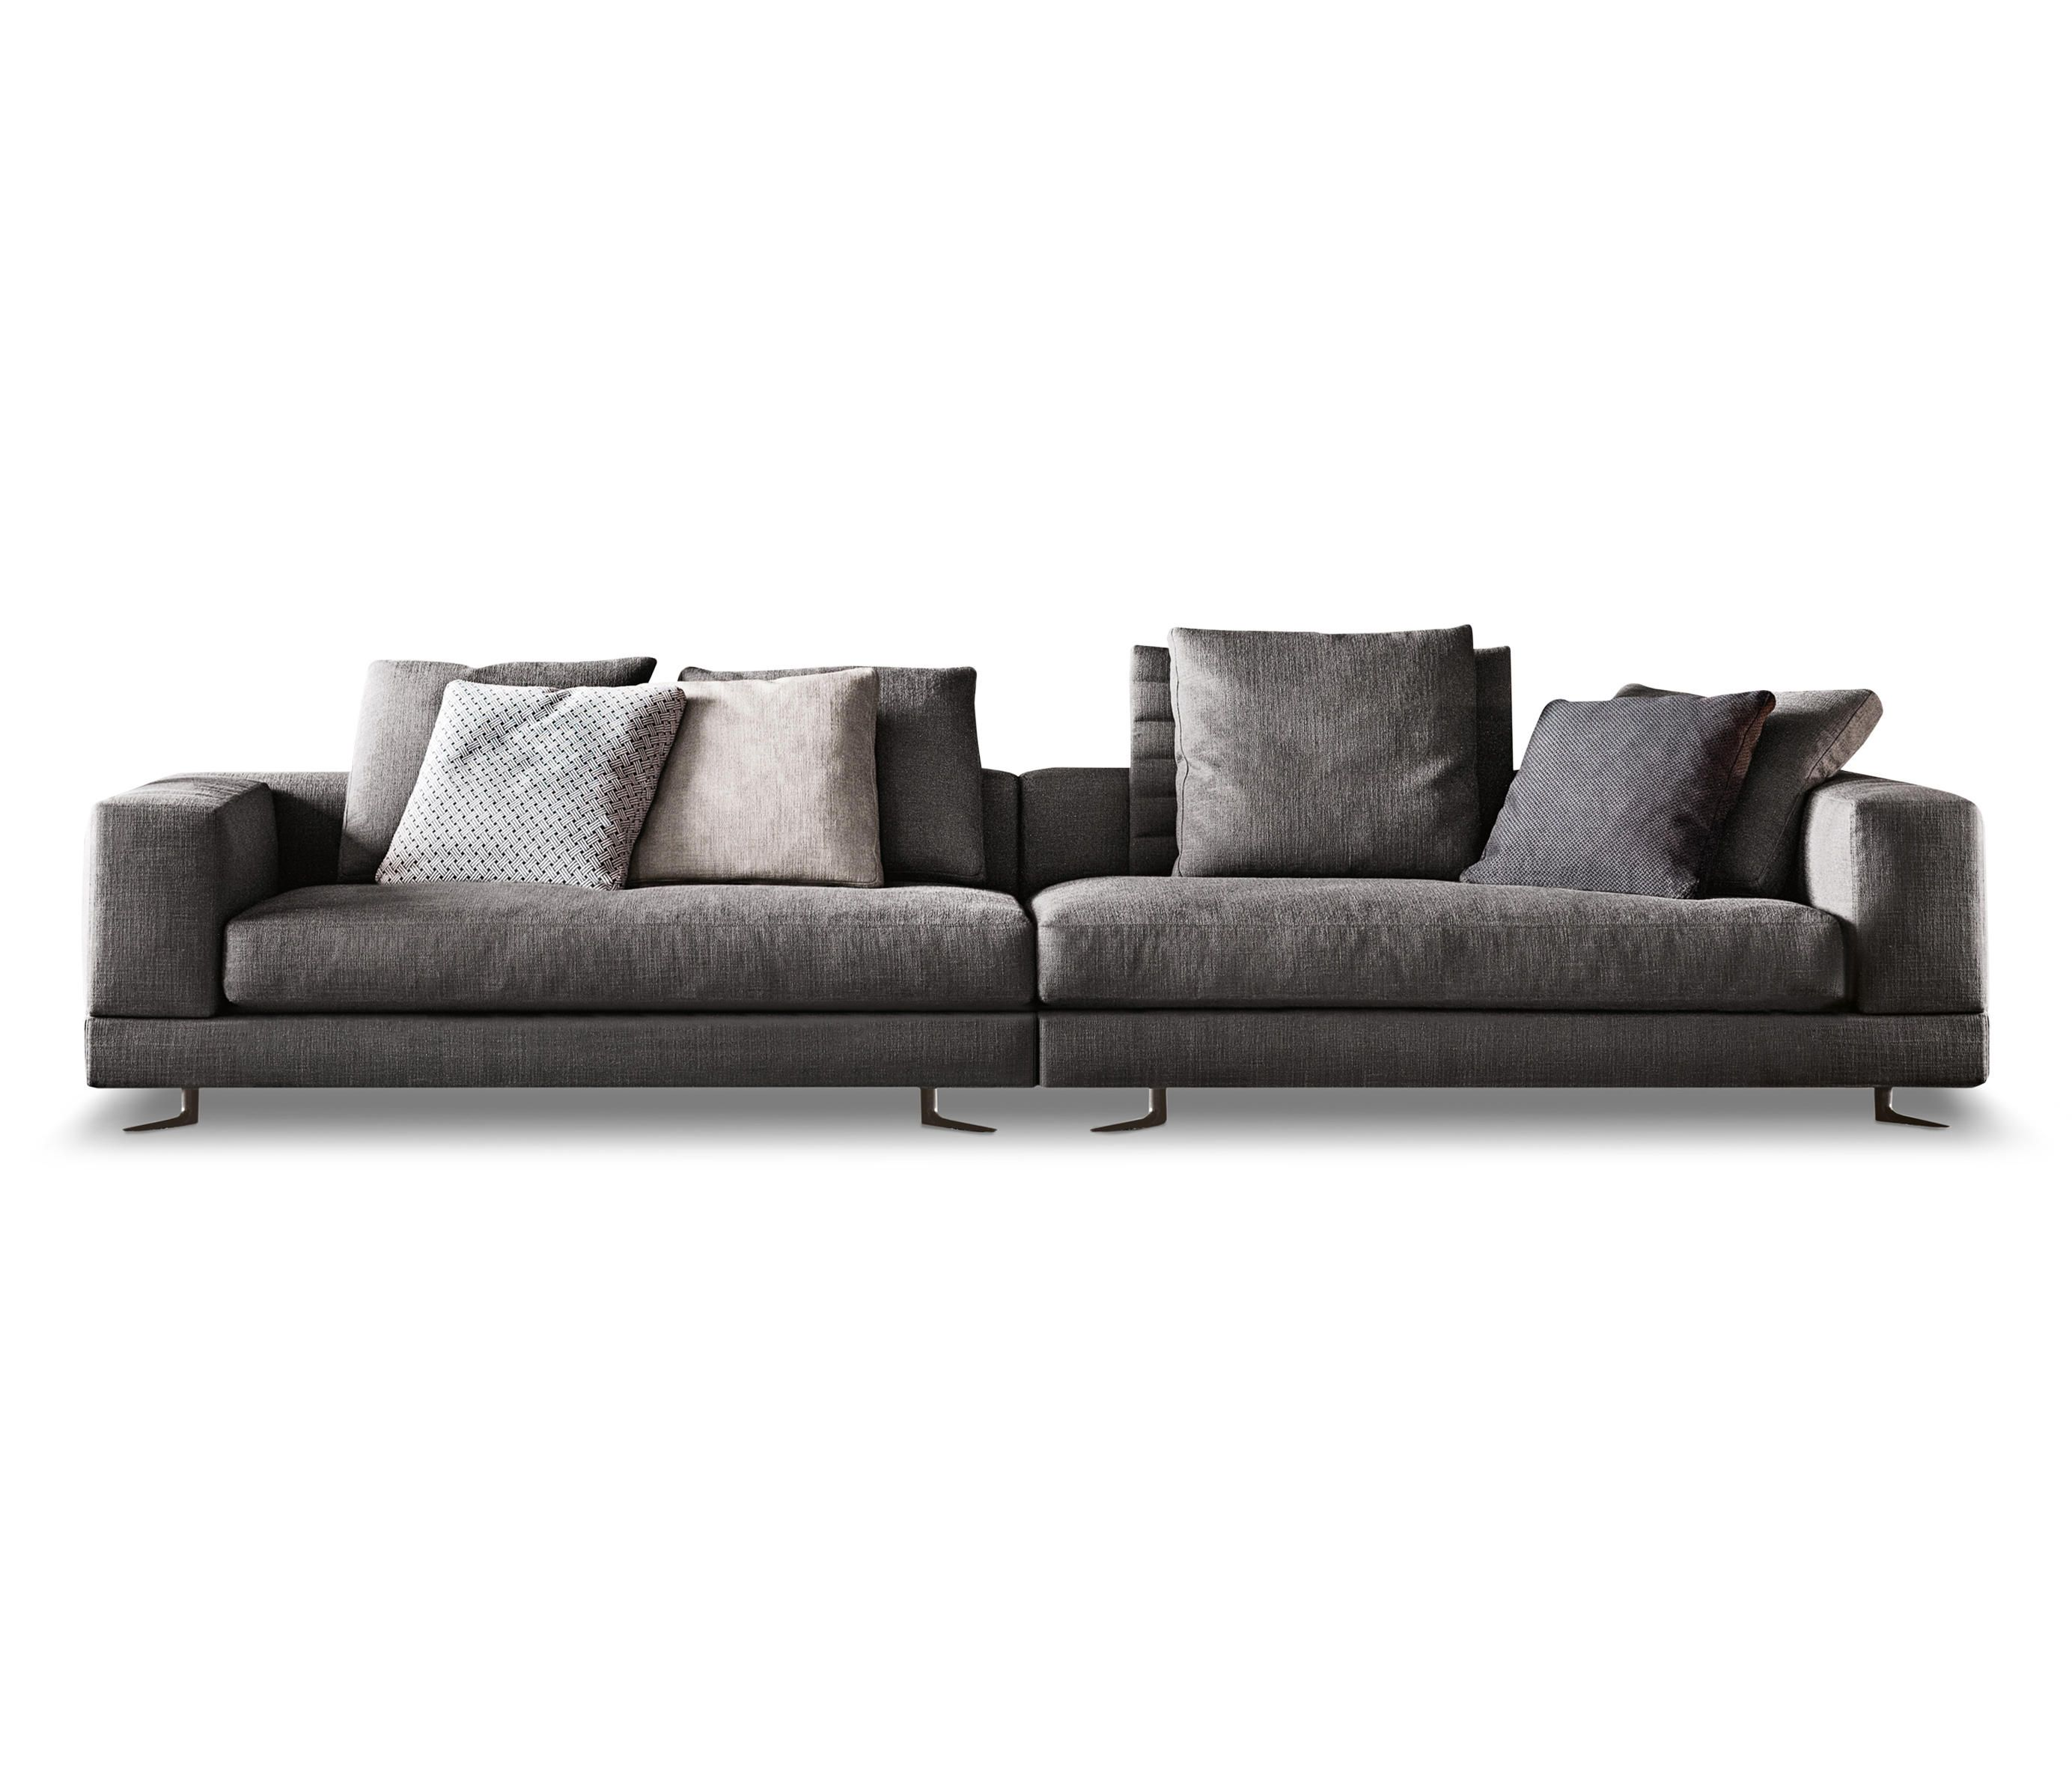 White Designer Lounge Sofas From Minotti All Information High Resolution Images Cads Catalogues Contact Information Find With Images Minotti Sofa White Sofas